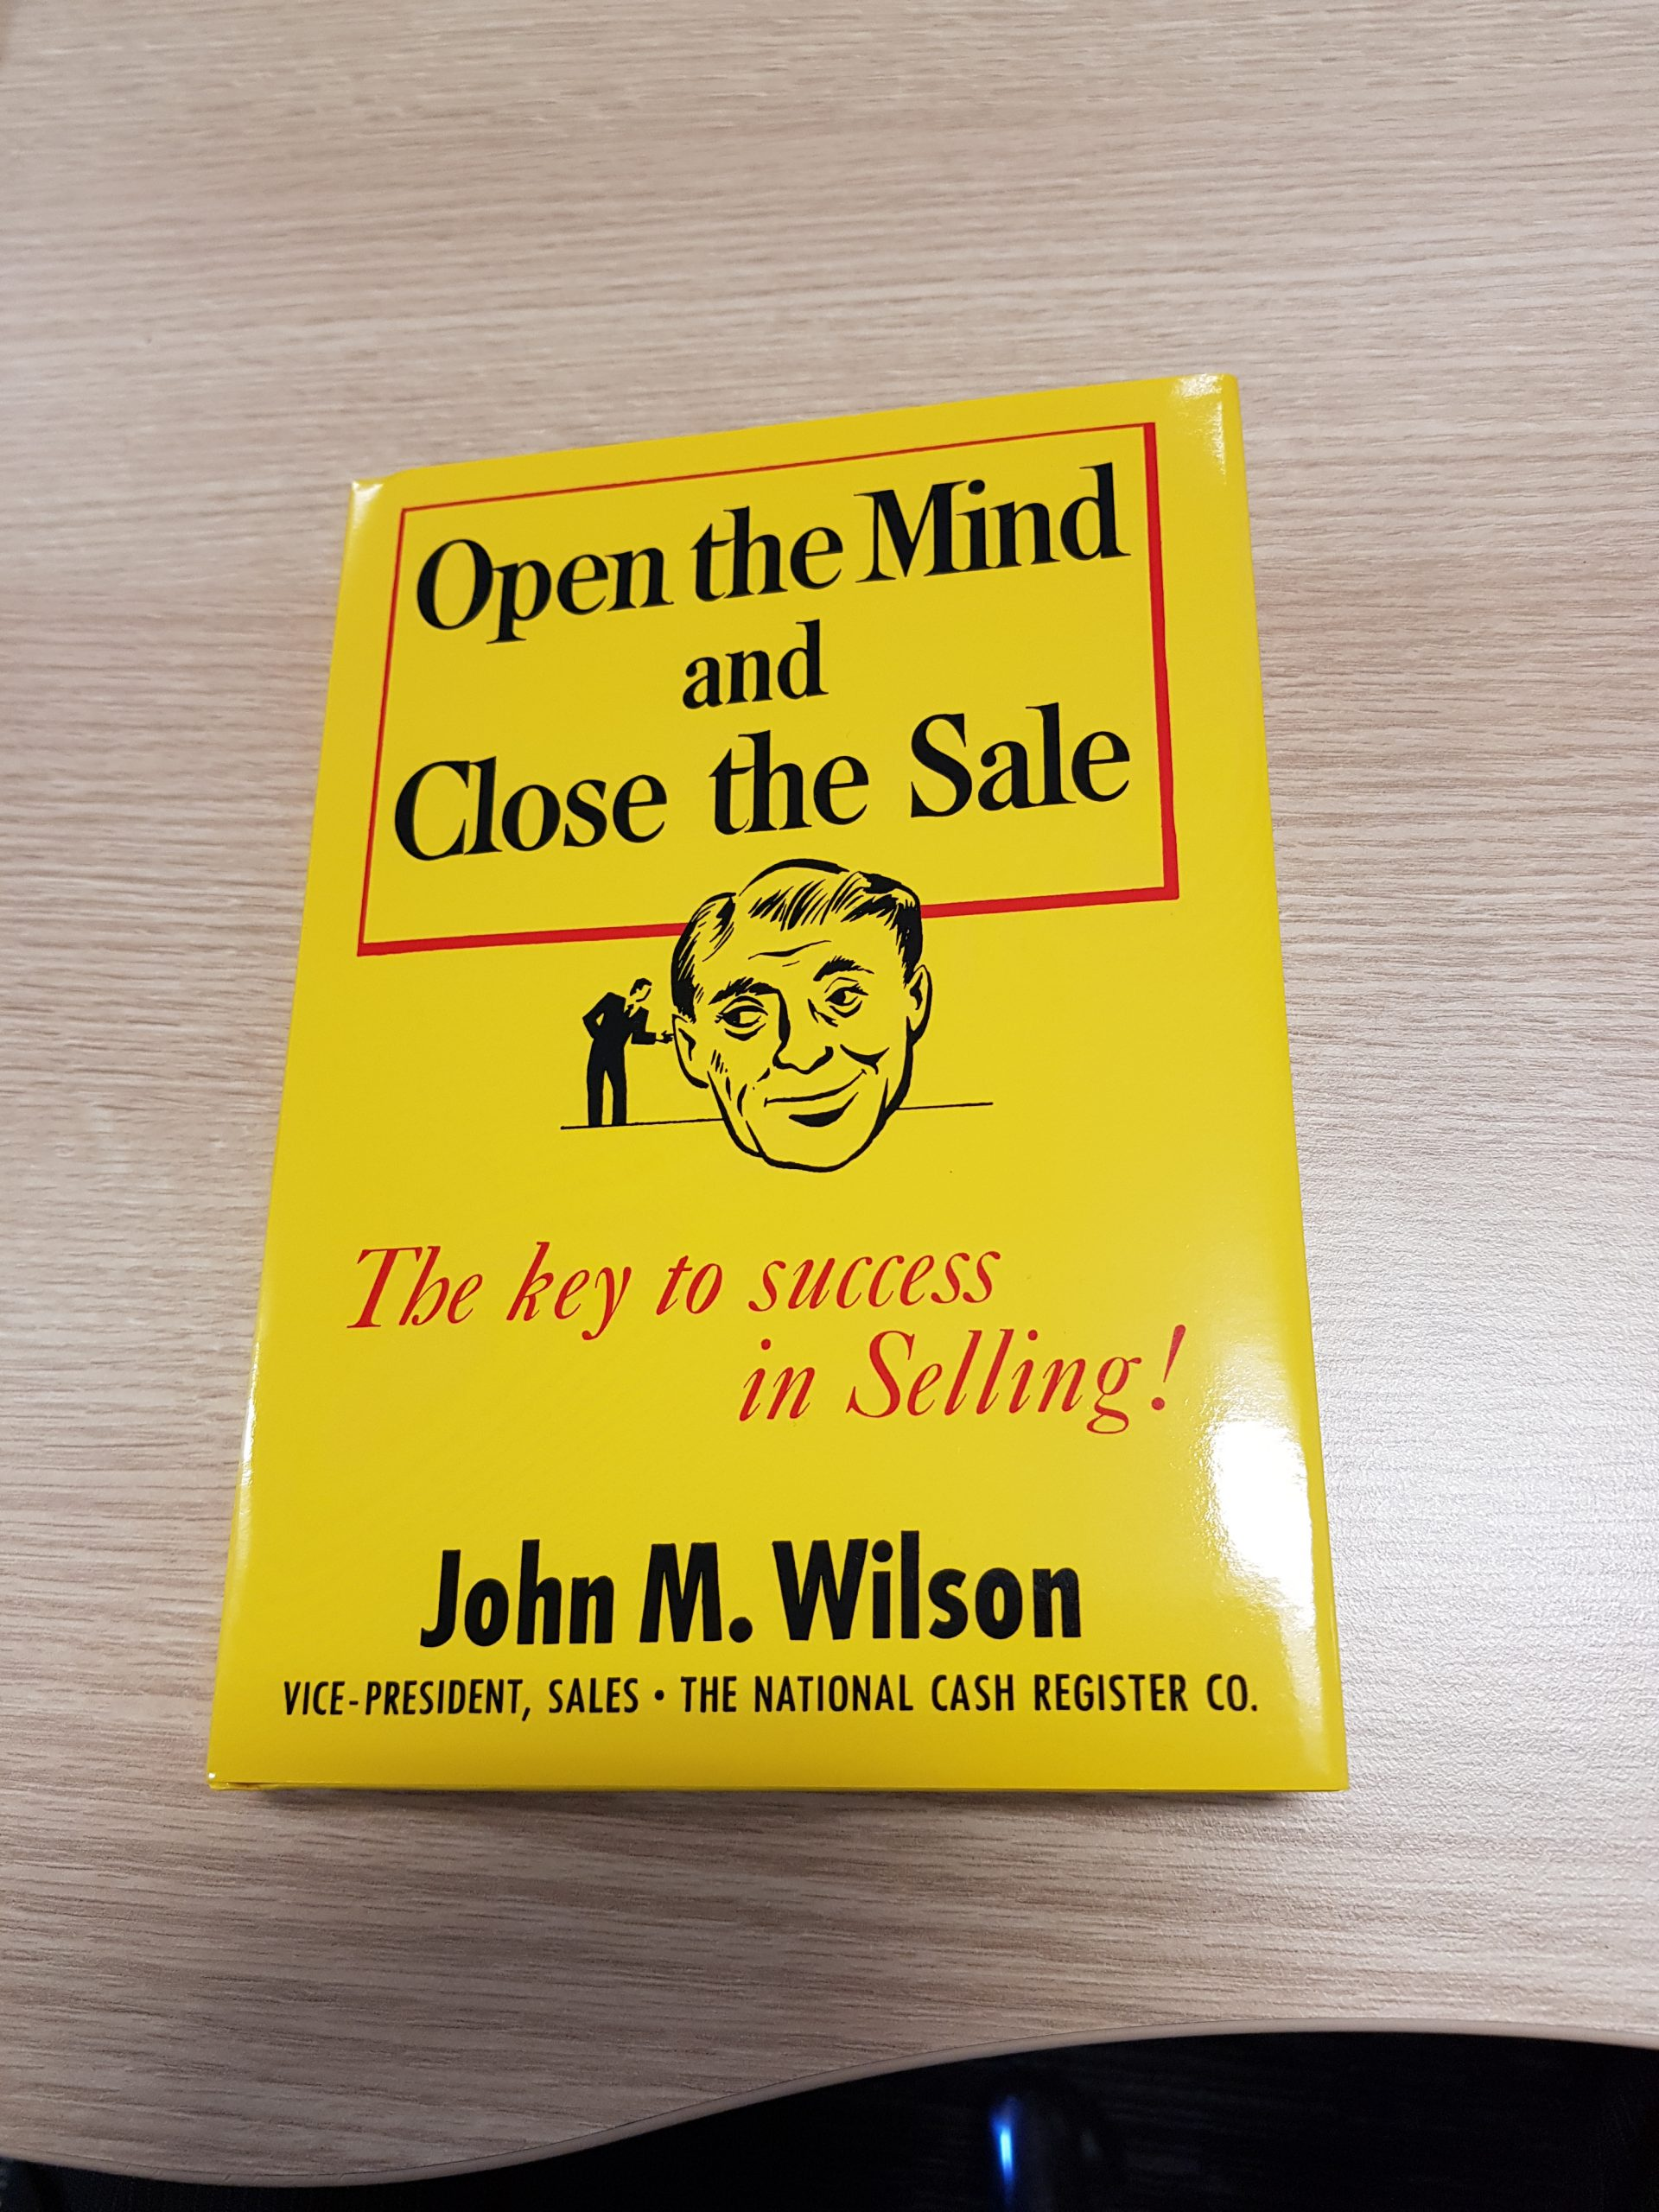 Open the Mind and Close the Sale